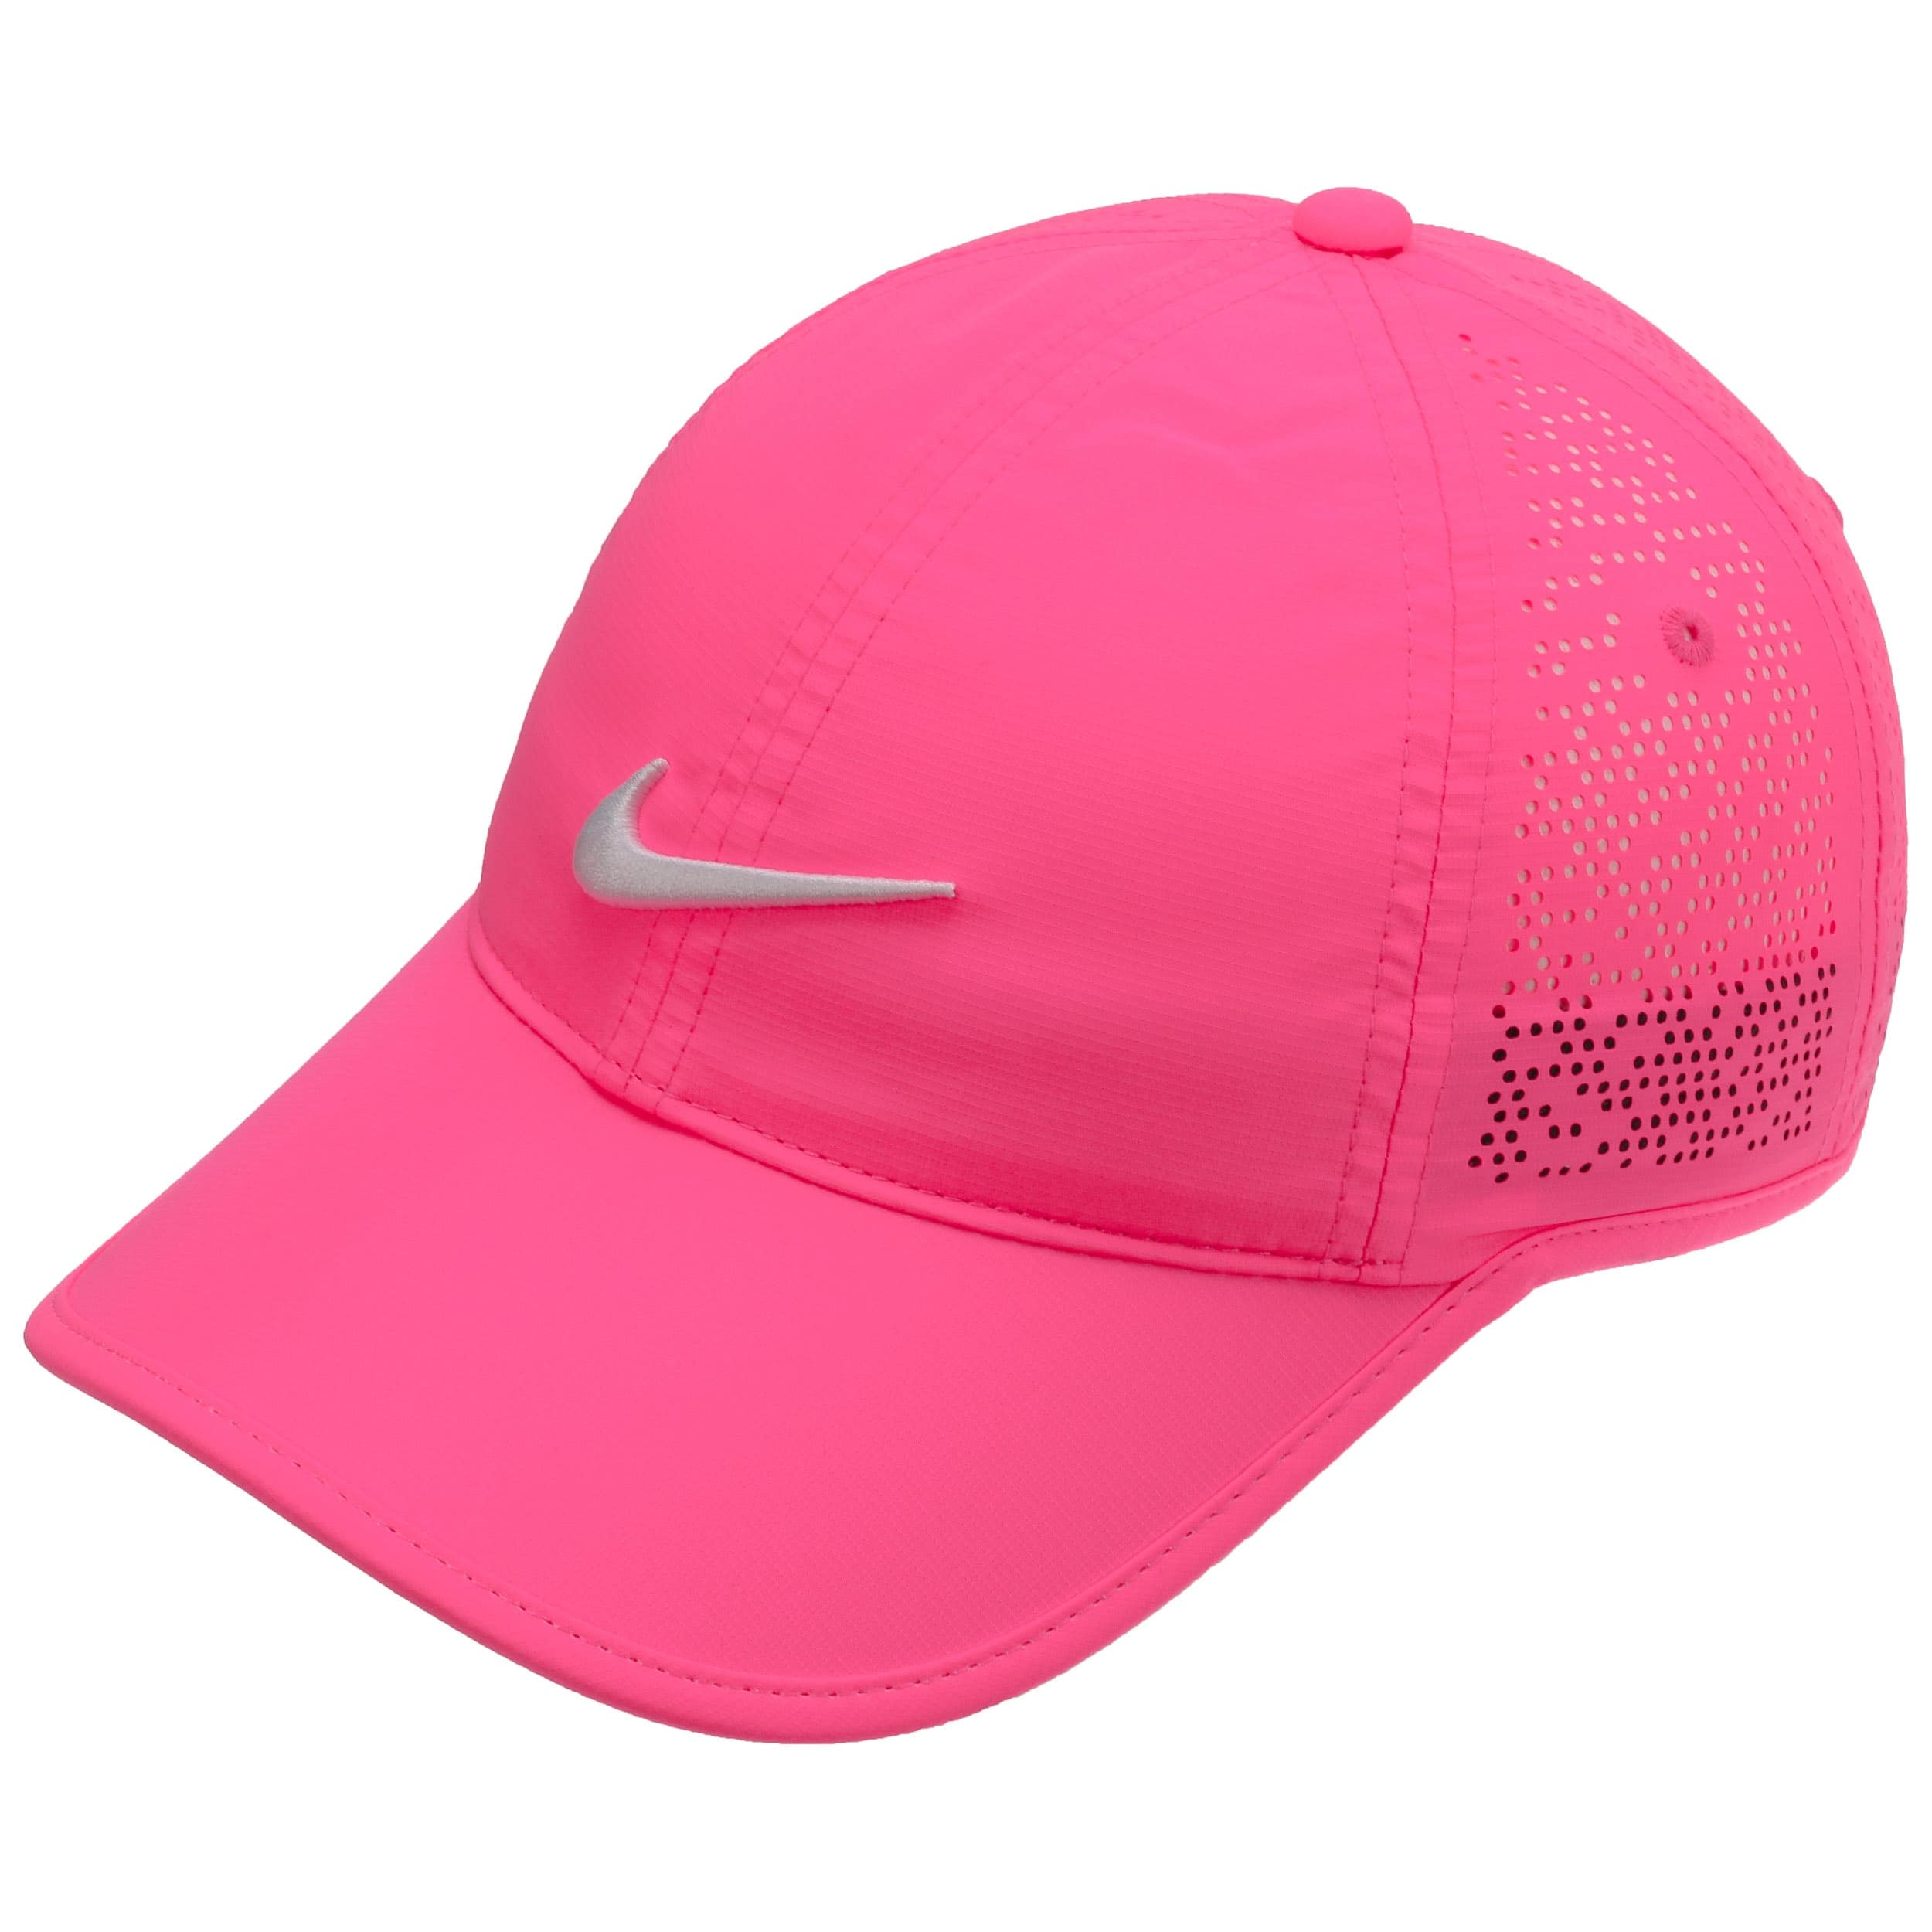 ... Swoosh Perforation Cap by Nike - pink 1 ... 088a616ea8a